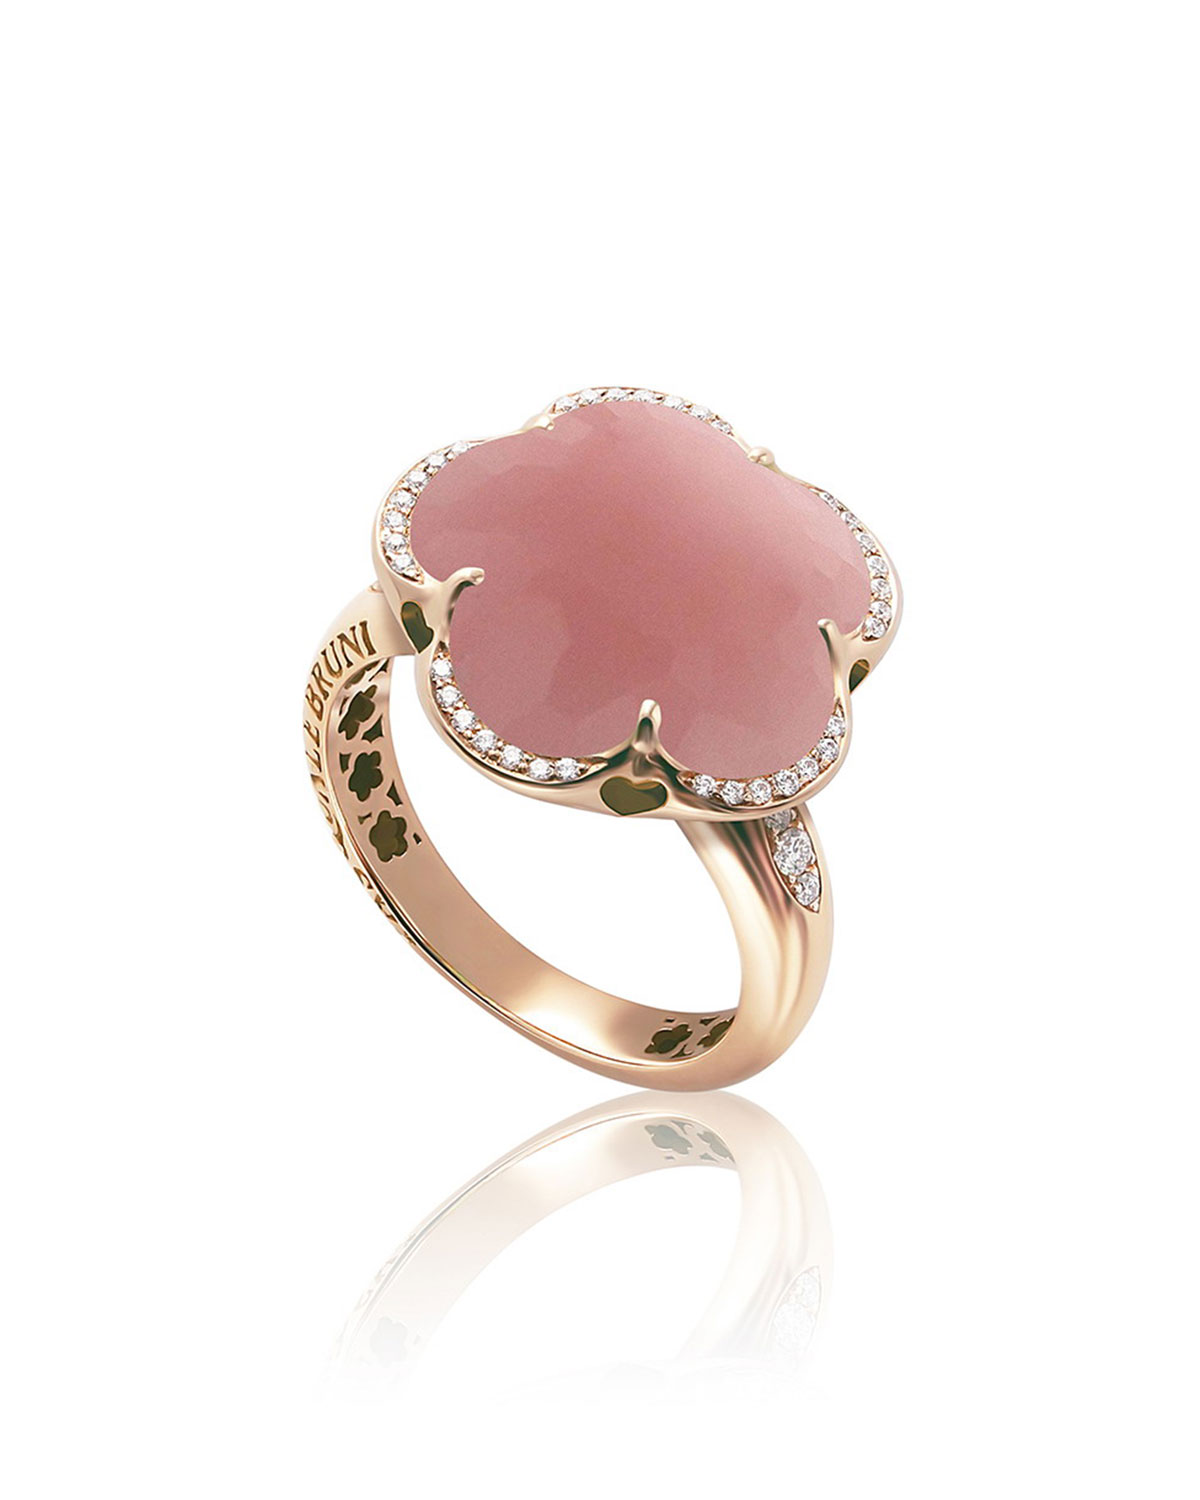 PASQUALE BRUNI Bon Ton 18K Rose Gold Pink Chalcedony Flower Ring W/ Diamonds, Size 6 in Pink/Rose Gold